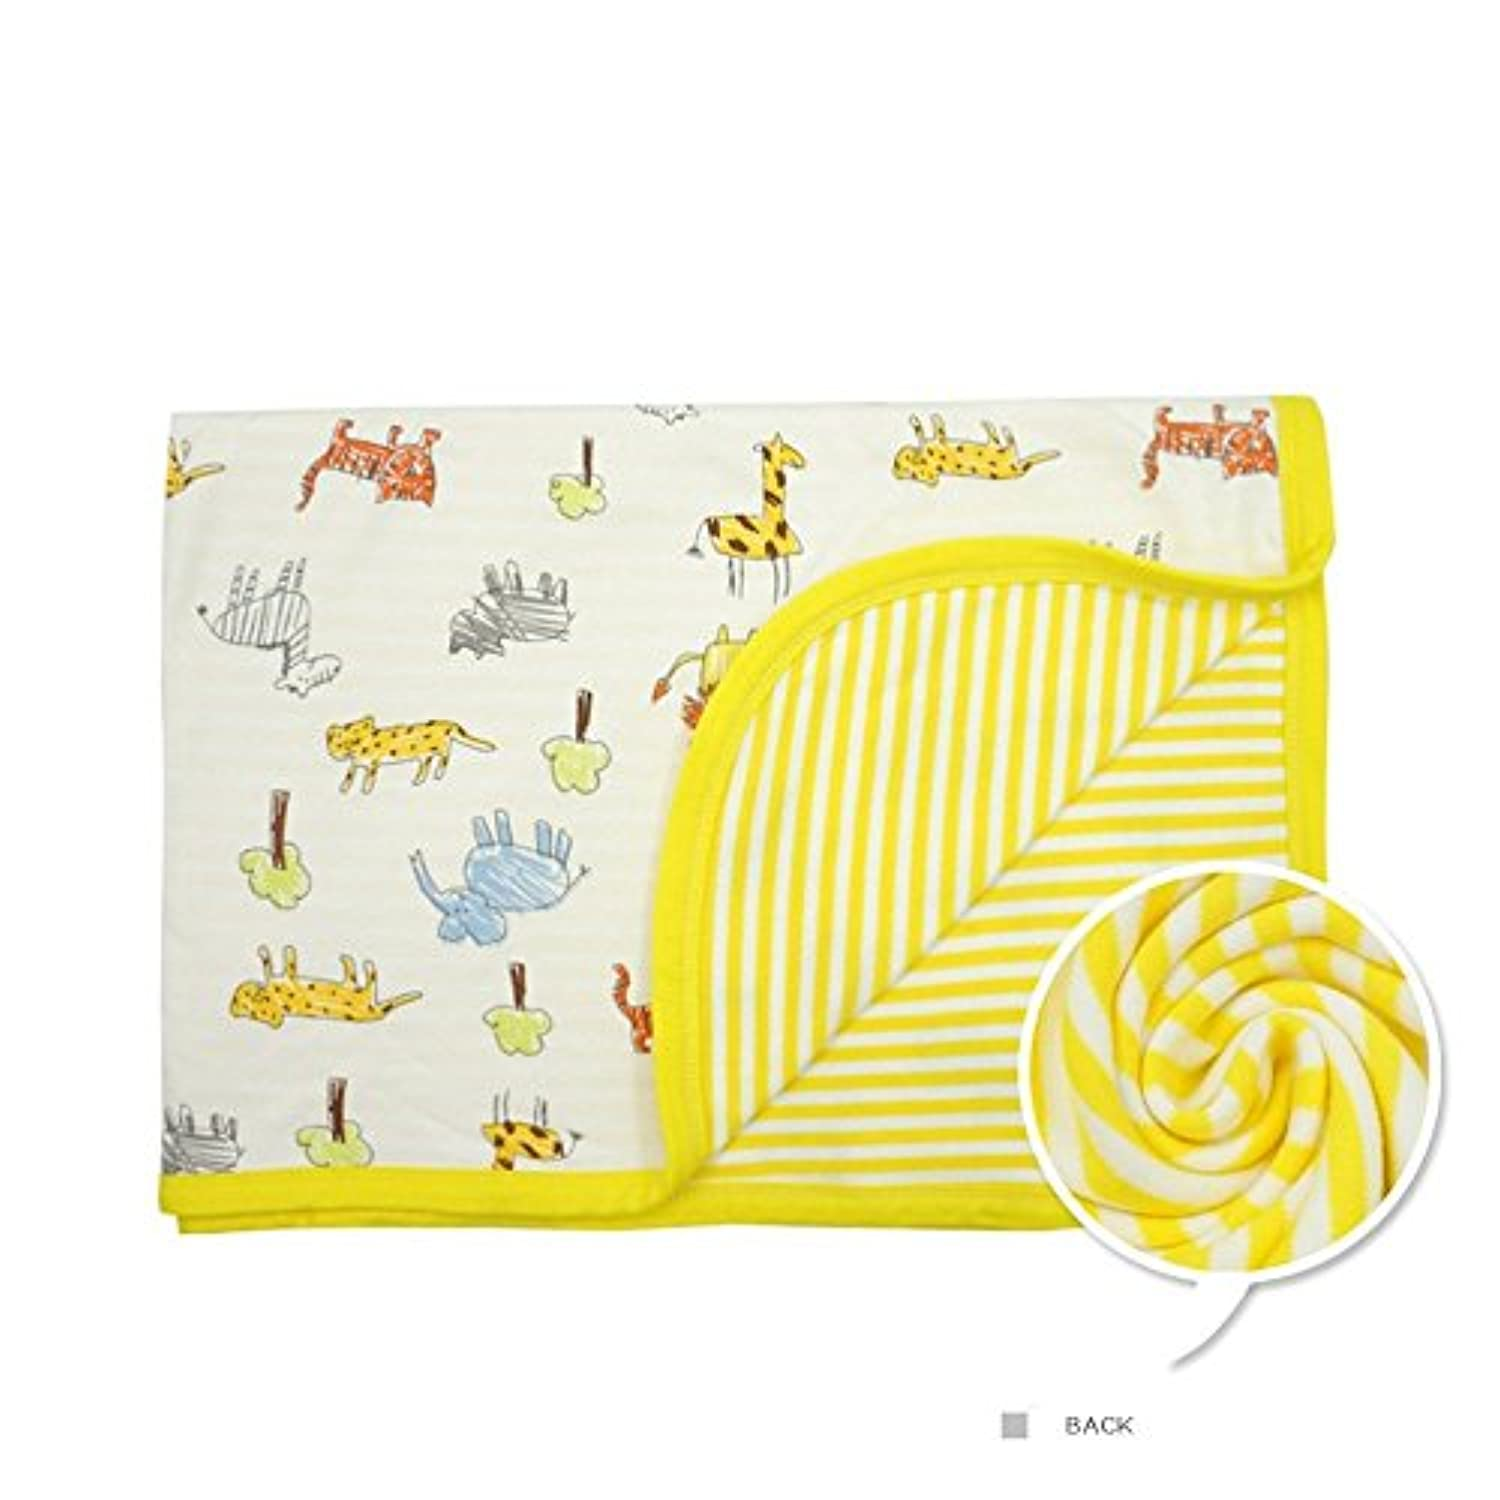 CuteOn Baby/Toddler Girls/Boys Blanket - 13 Forest by CuteOn